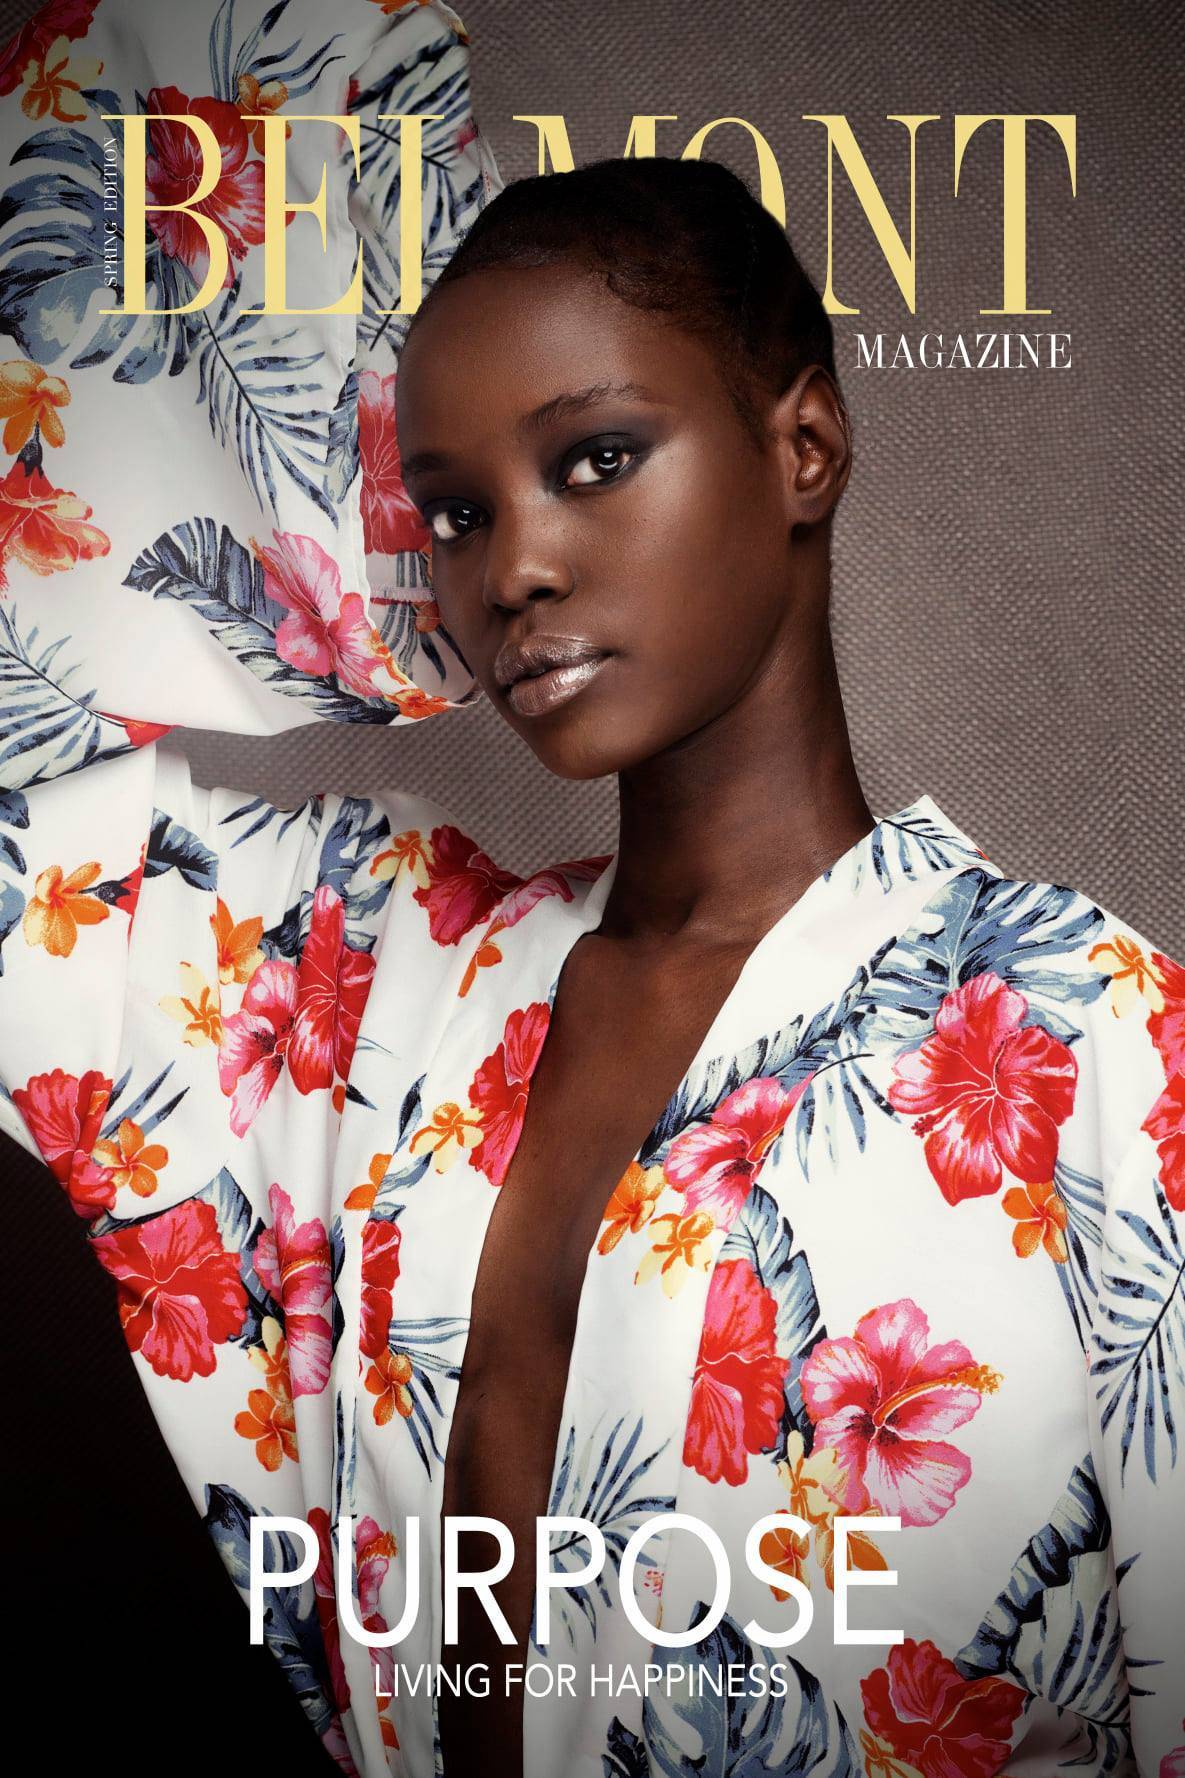 BELMONT MAGAZINE. Issue 2 Cover Girl is ANGAIR BIONG